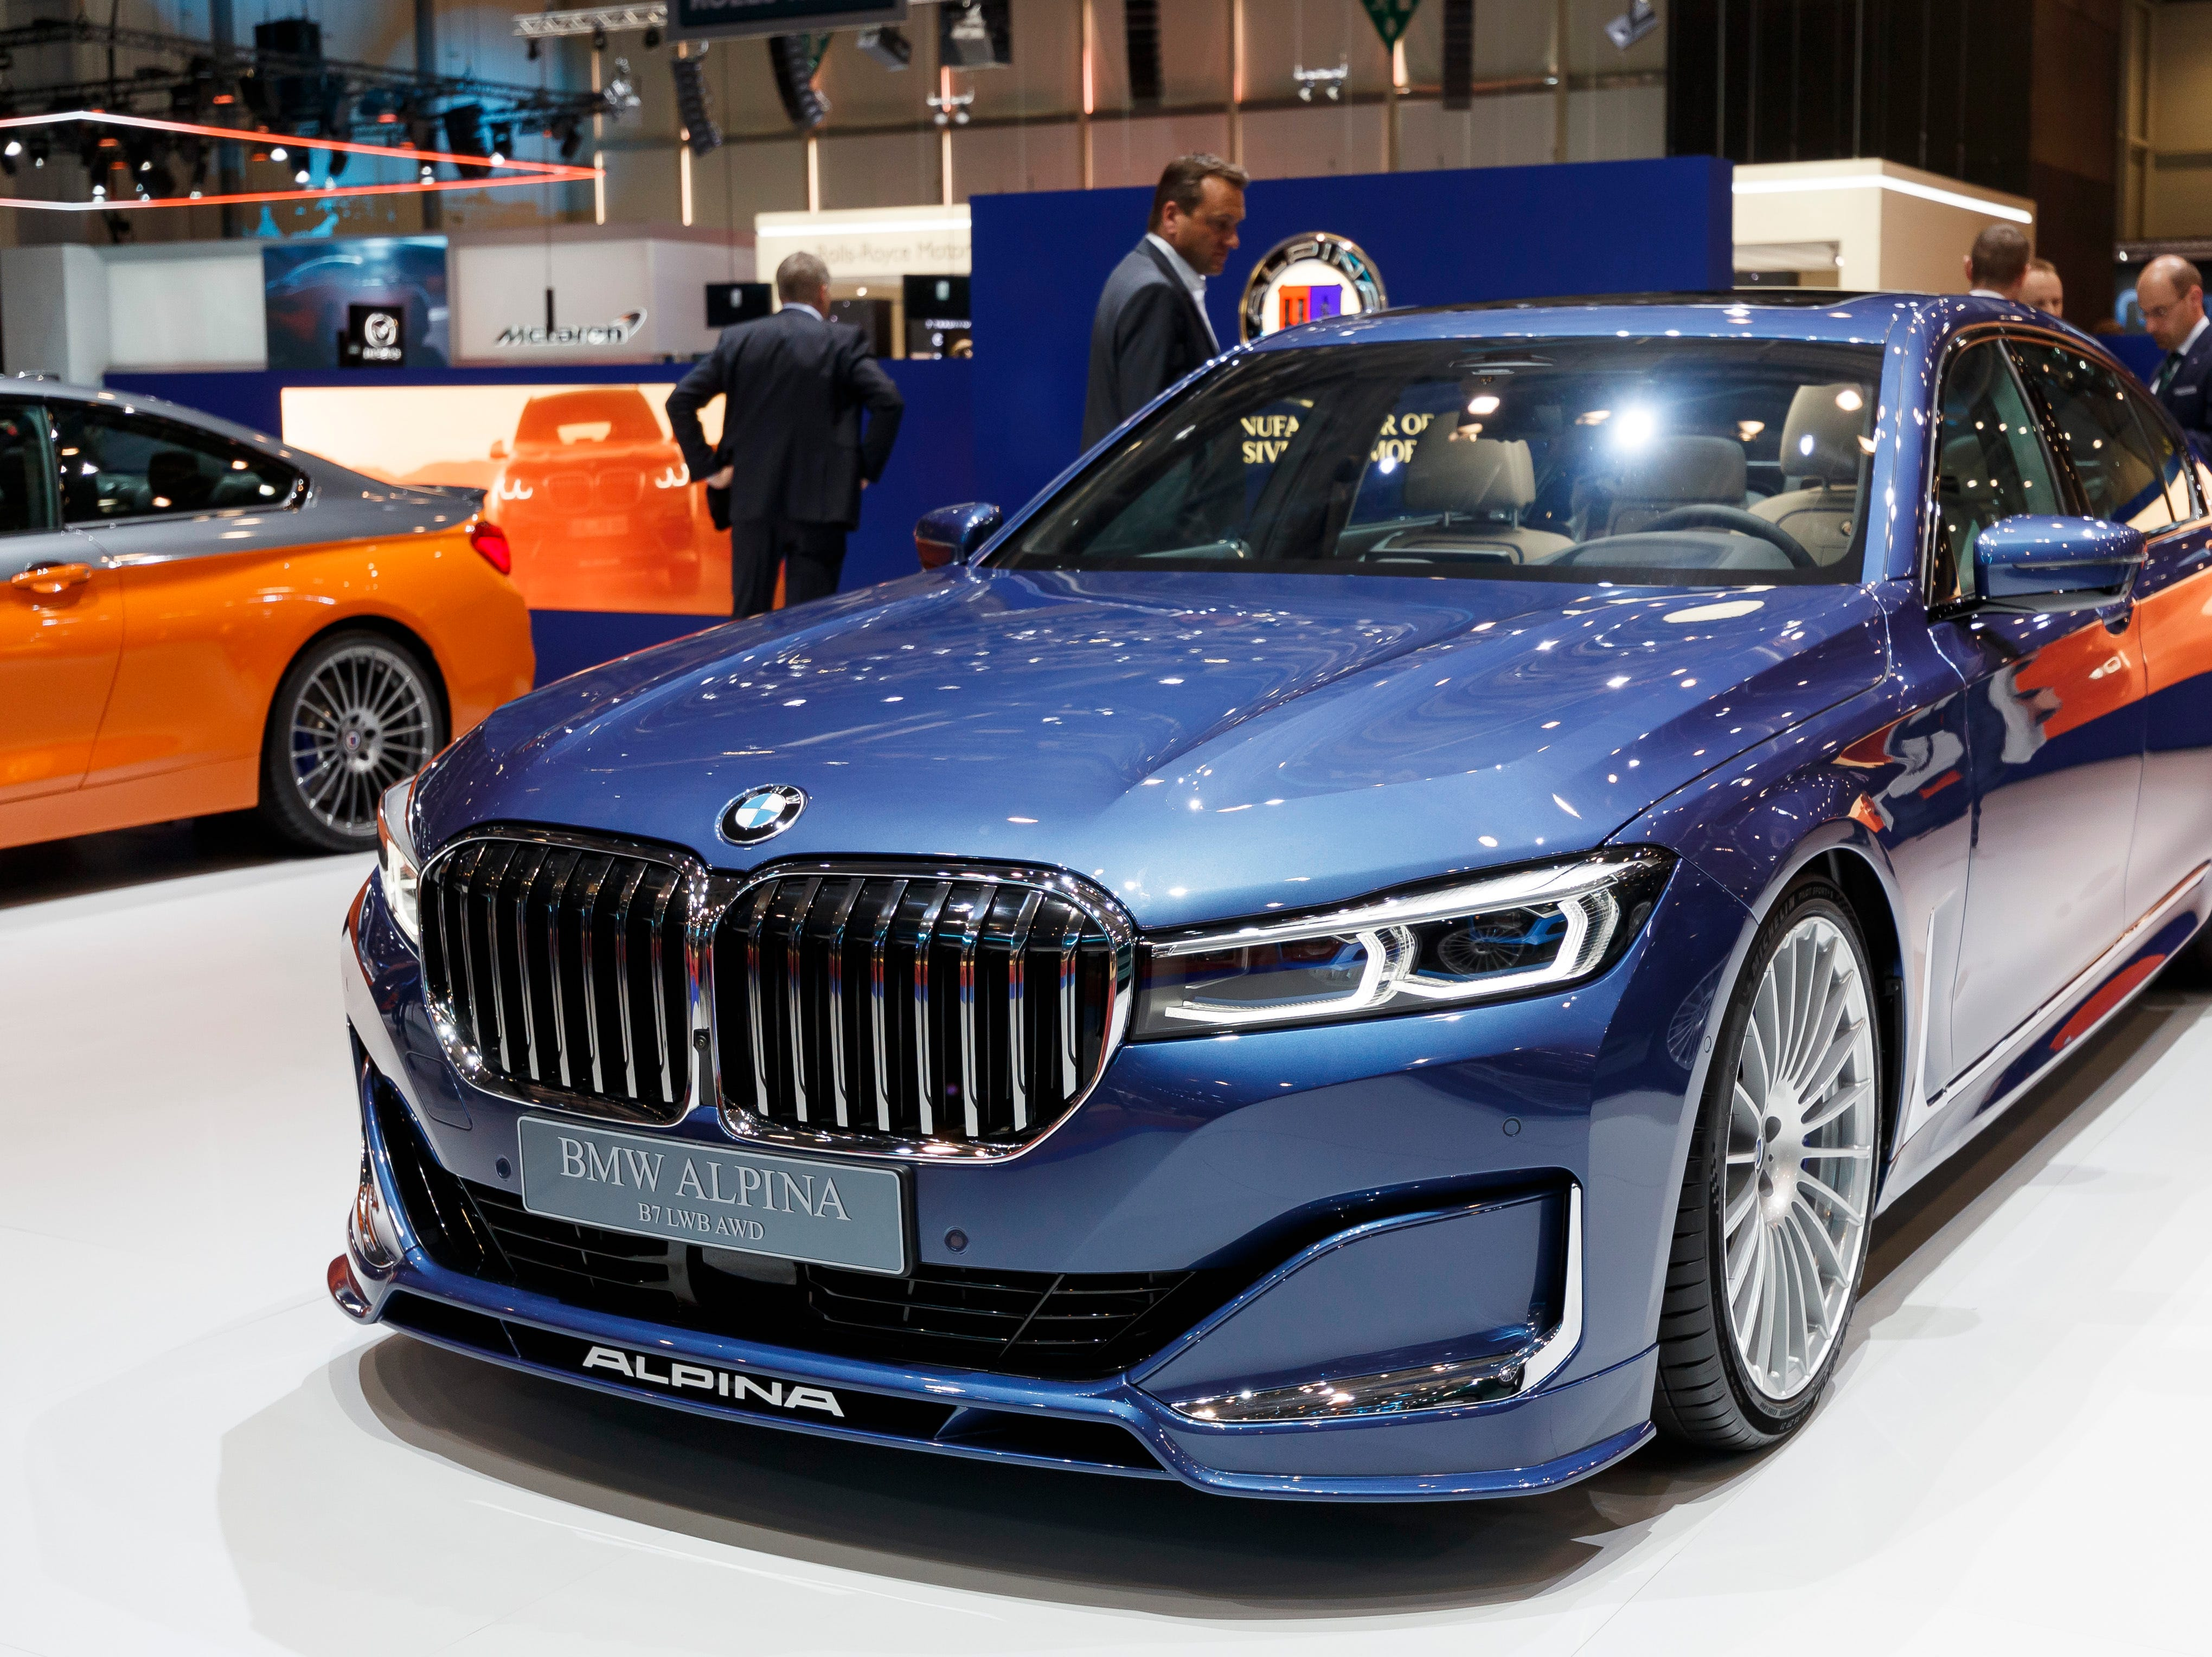 The BMW Alpina B7 is on display at the BMW booth.